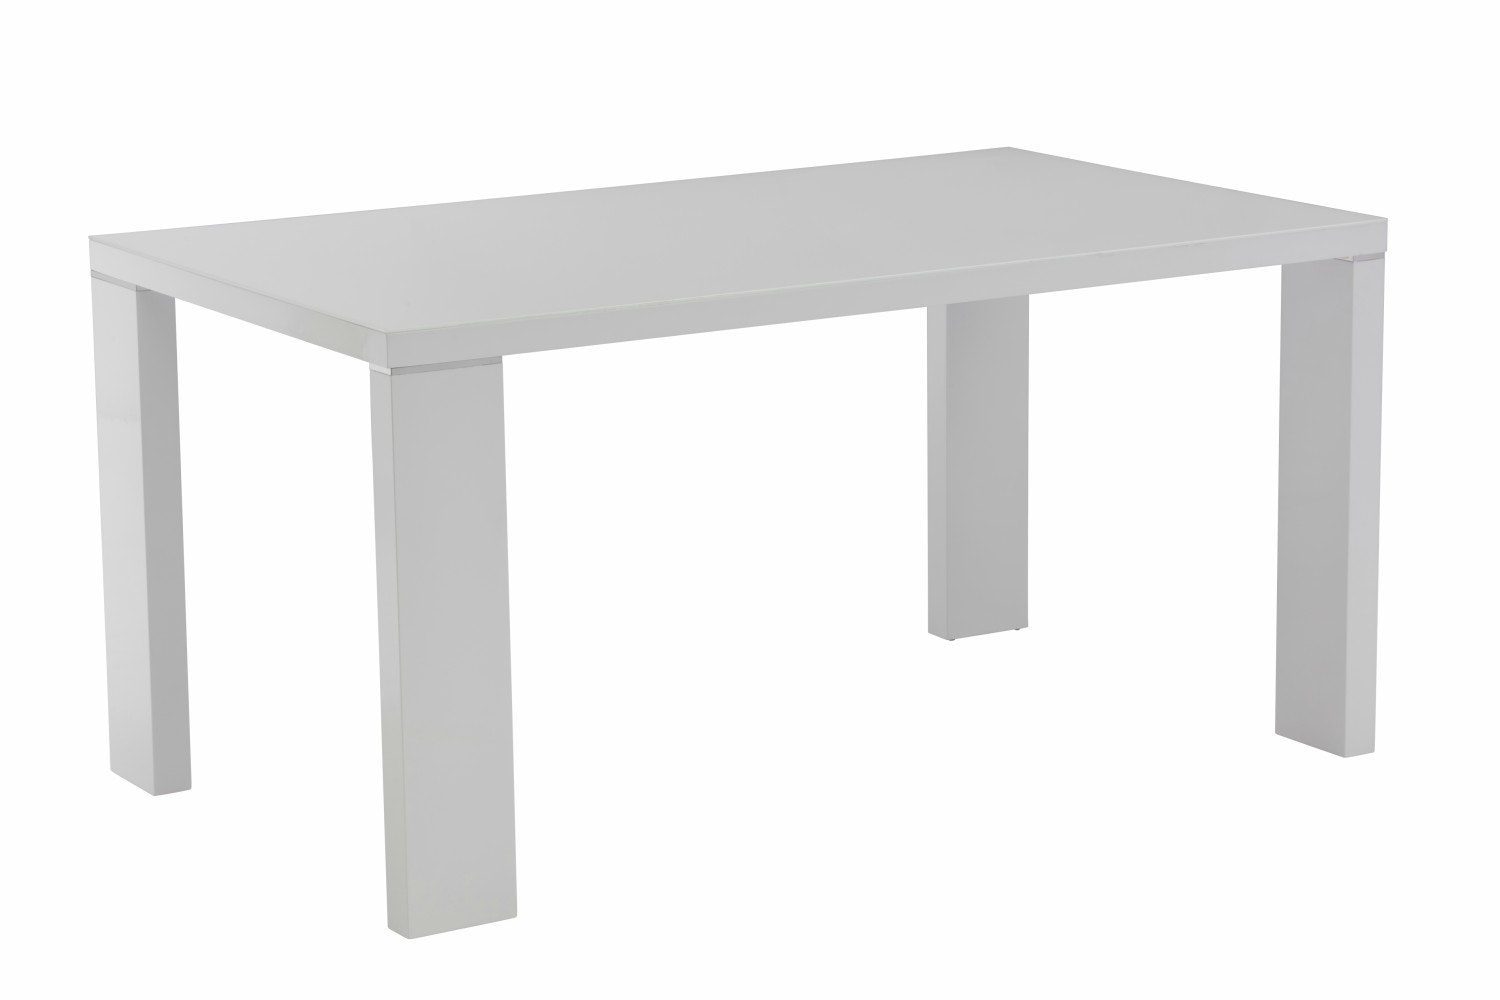 Lexi Dining Table | 150cm